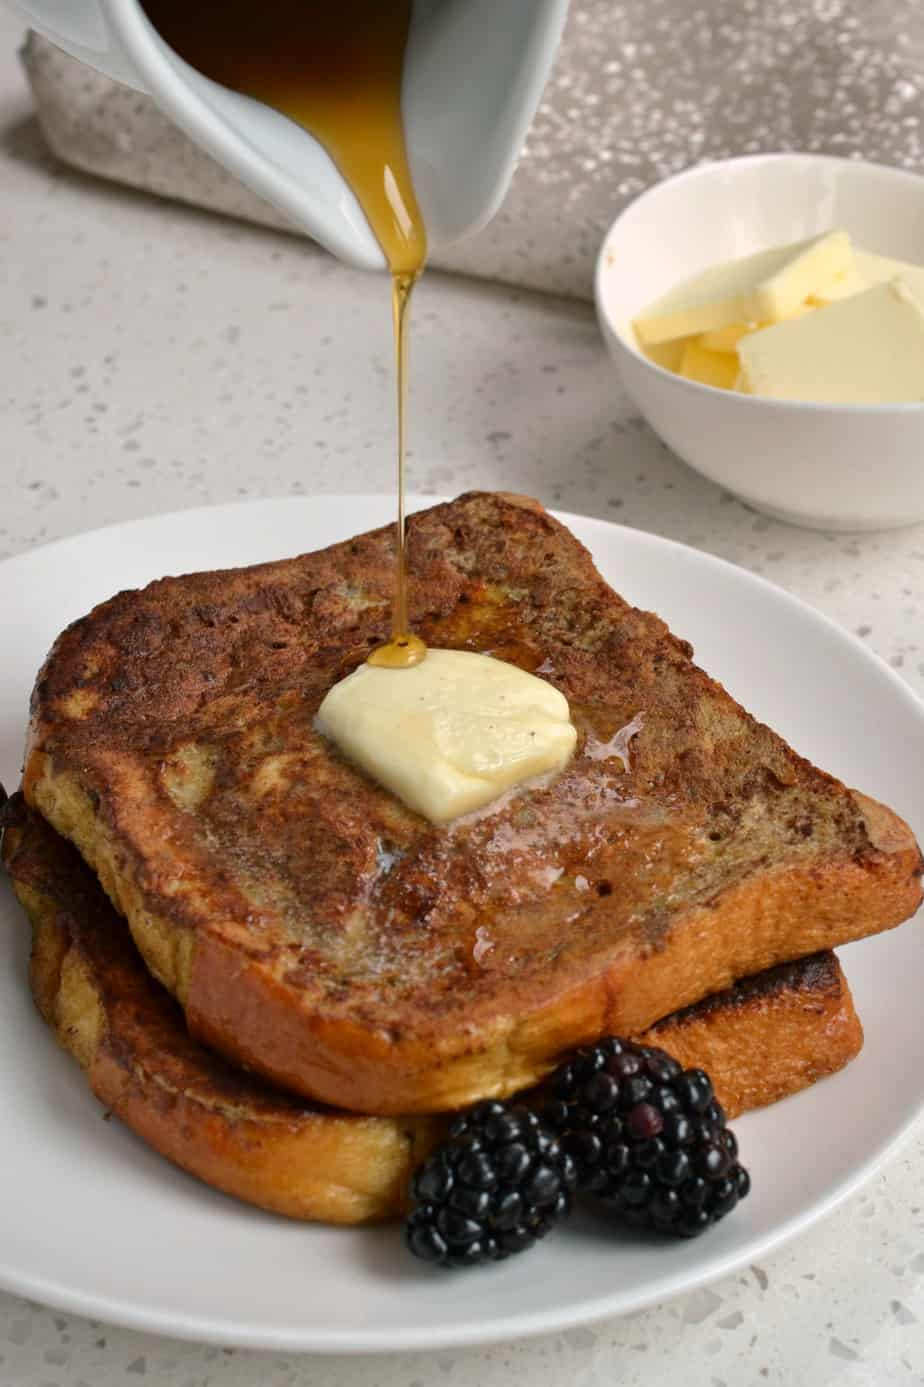 This French Toast Recipe brings brioche bread, eggs, milk, cinnamon, nutmeg, together for the ultimate breakfast.